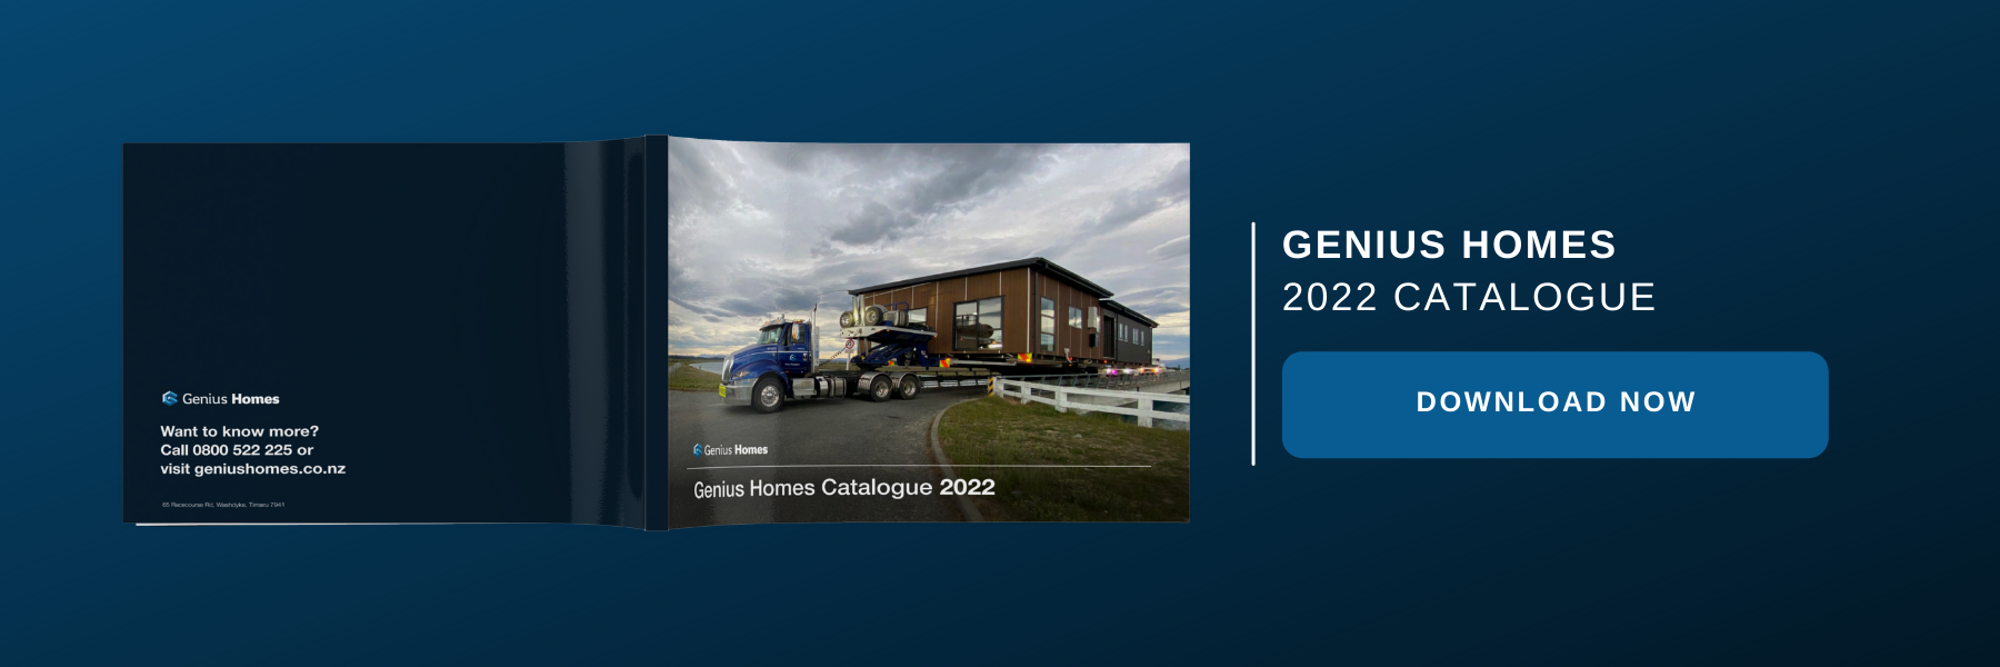 2020 Genius Homes Brochure download now